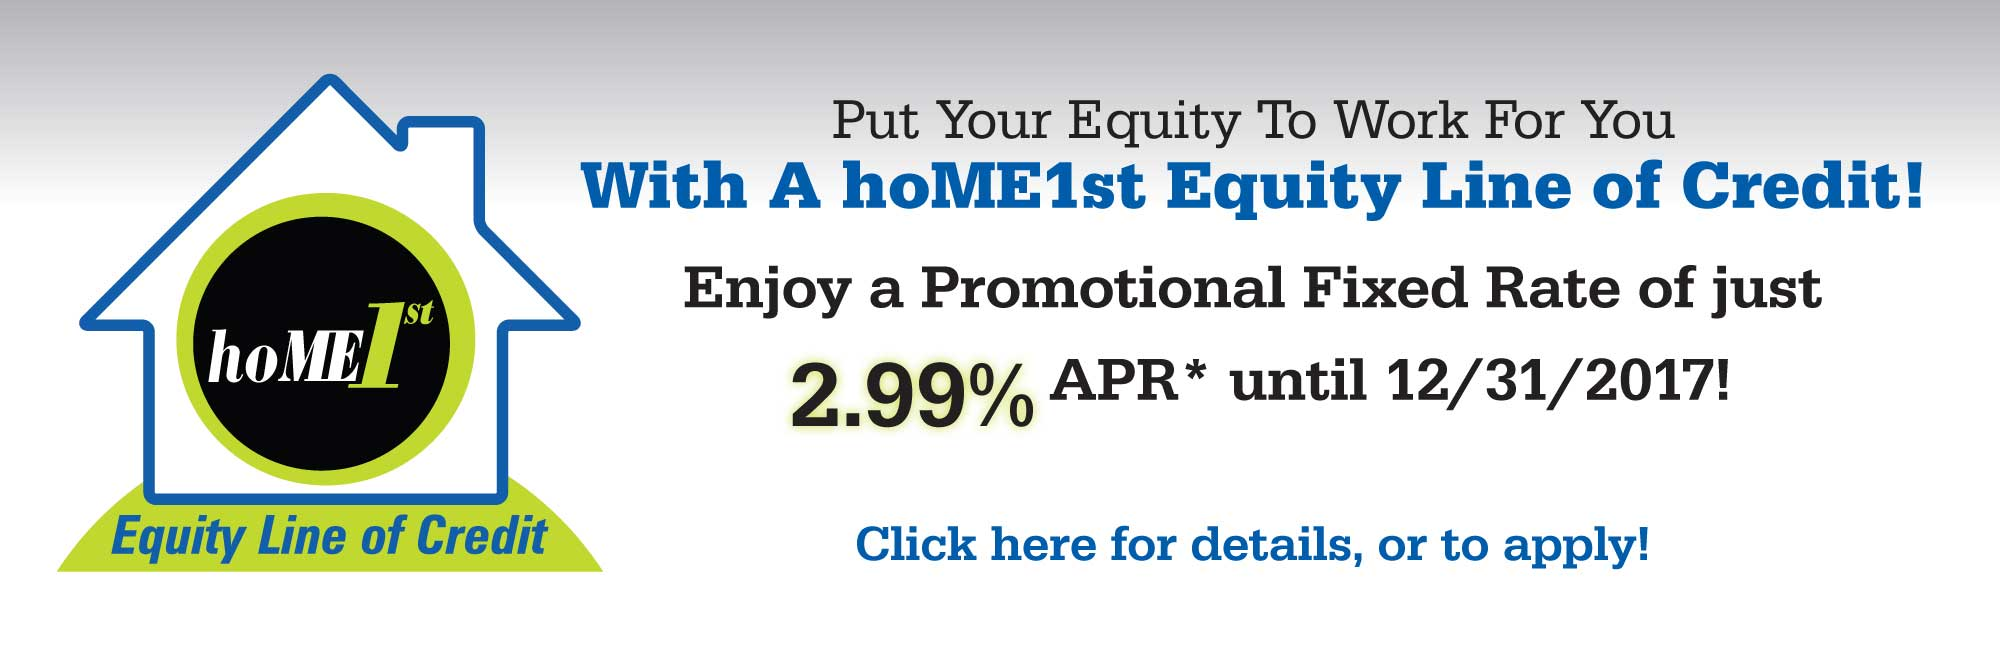 For a limited time, get a low introductory rate on a home equity line of credit with members first.